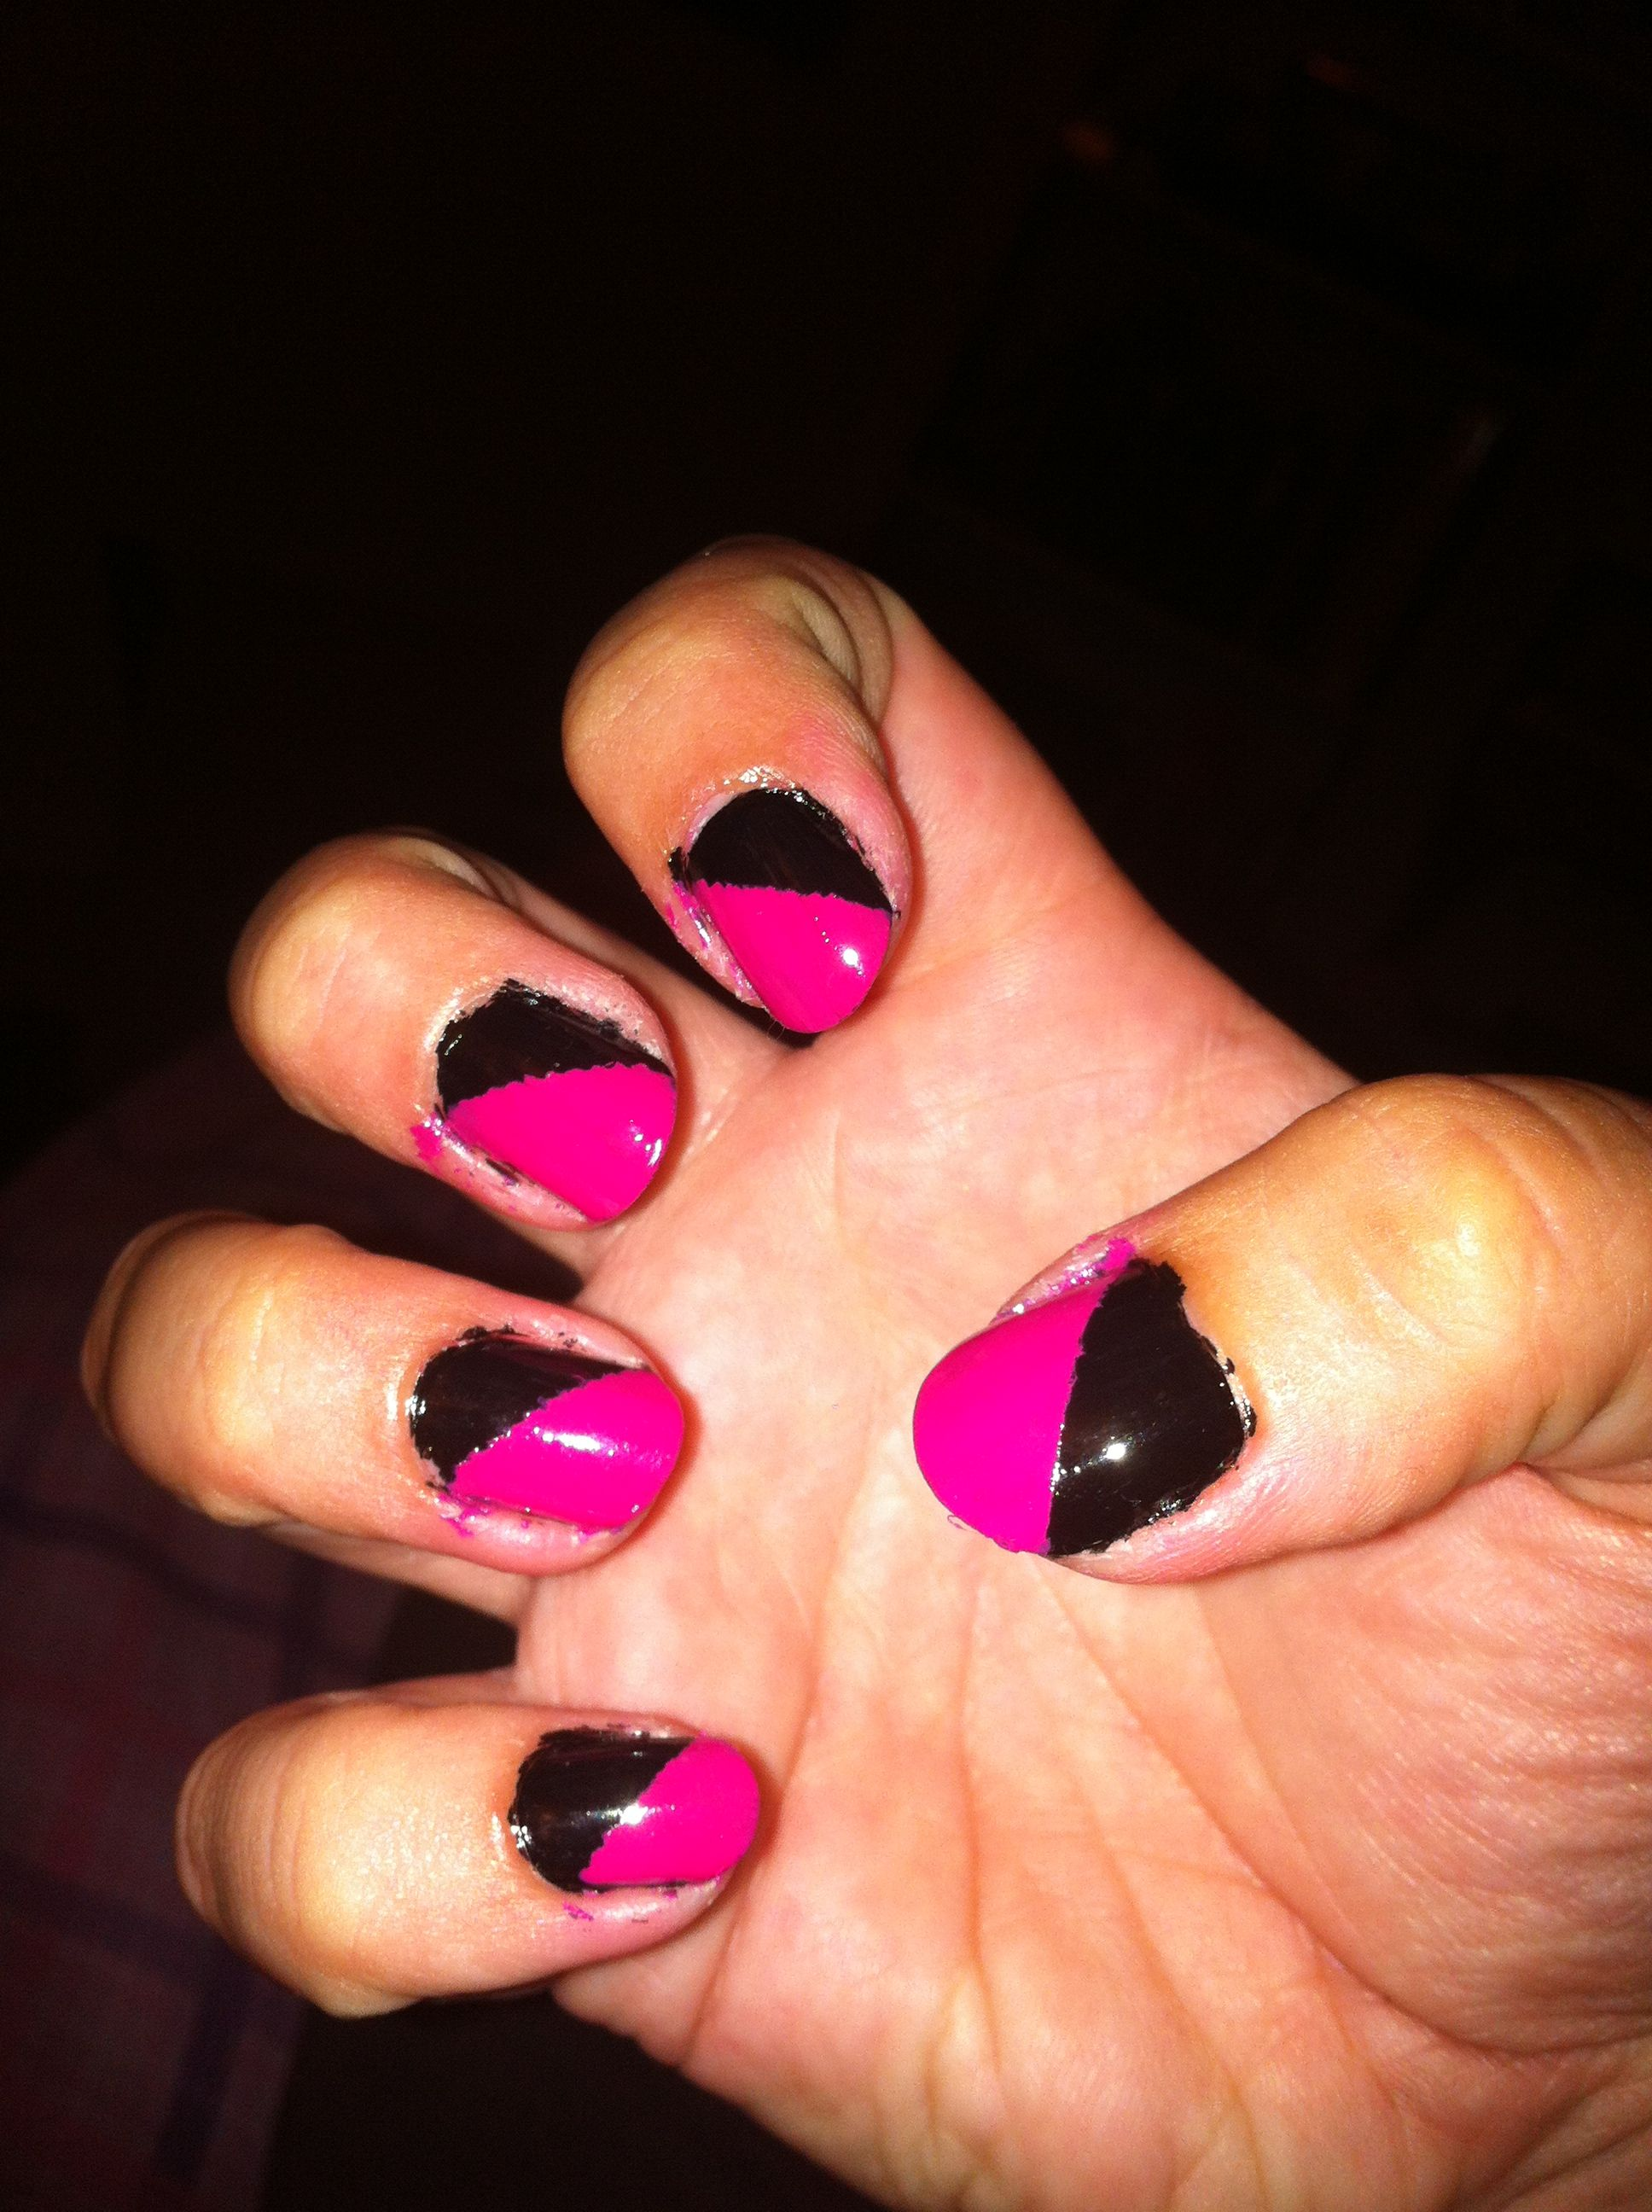 Pink and Black nails!